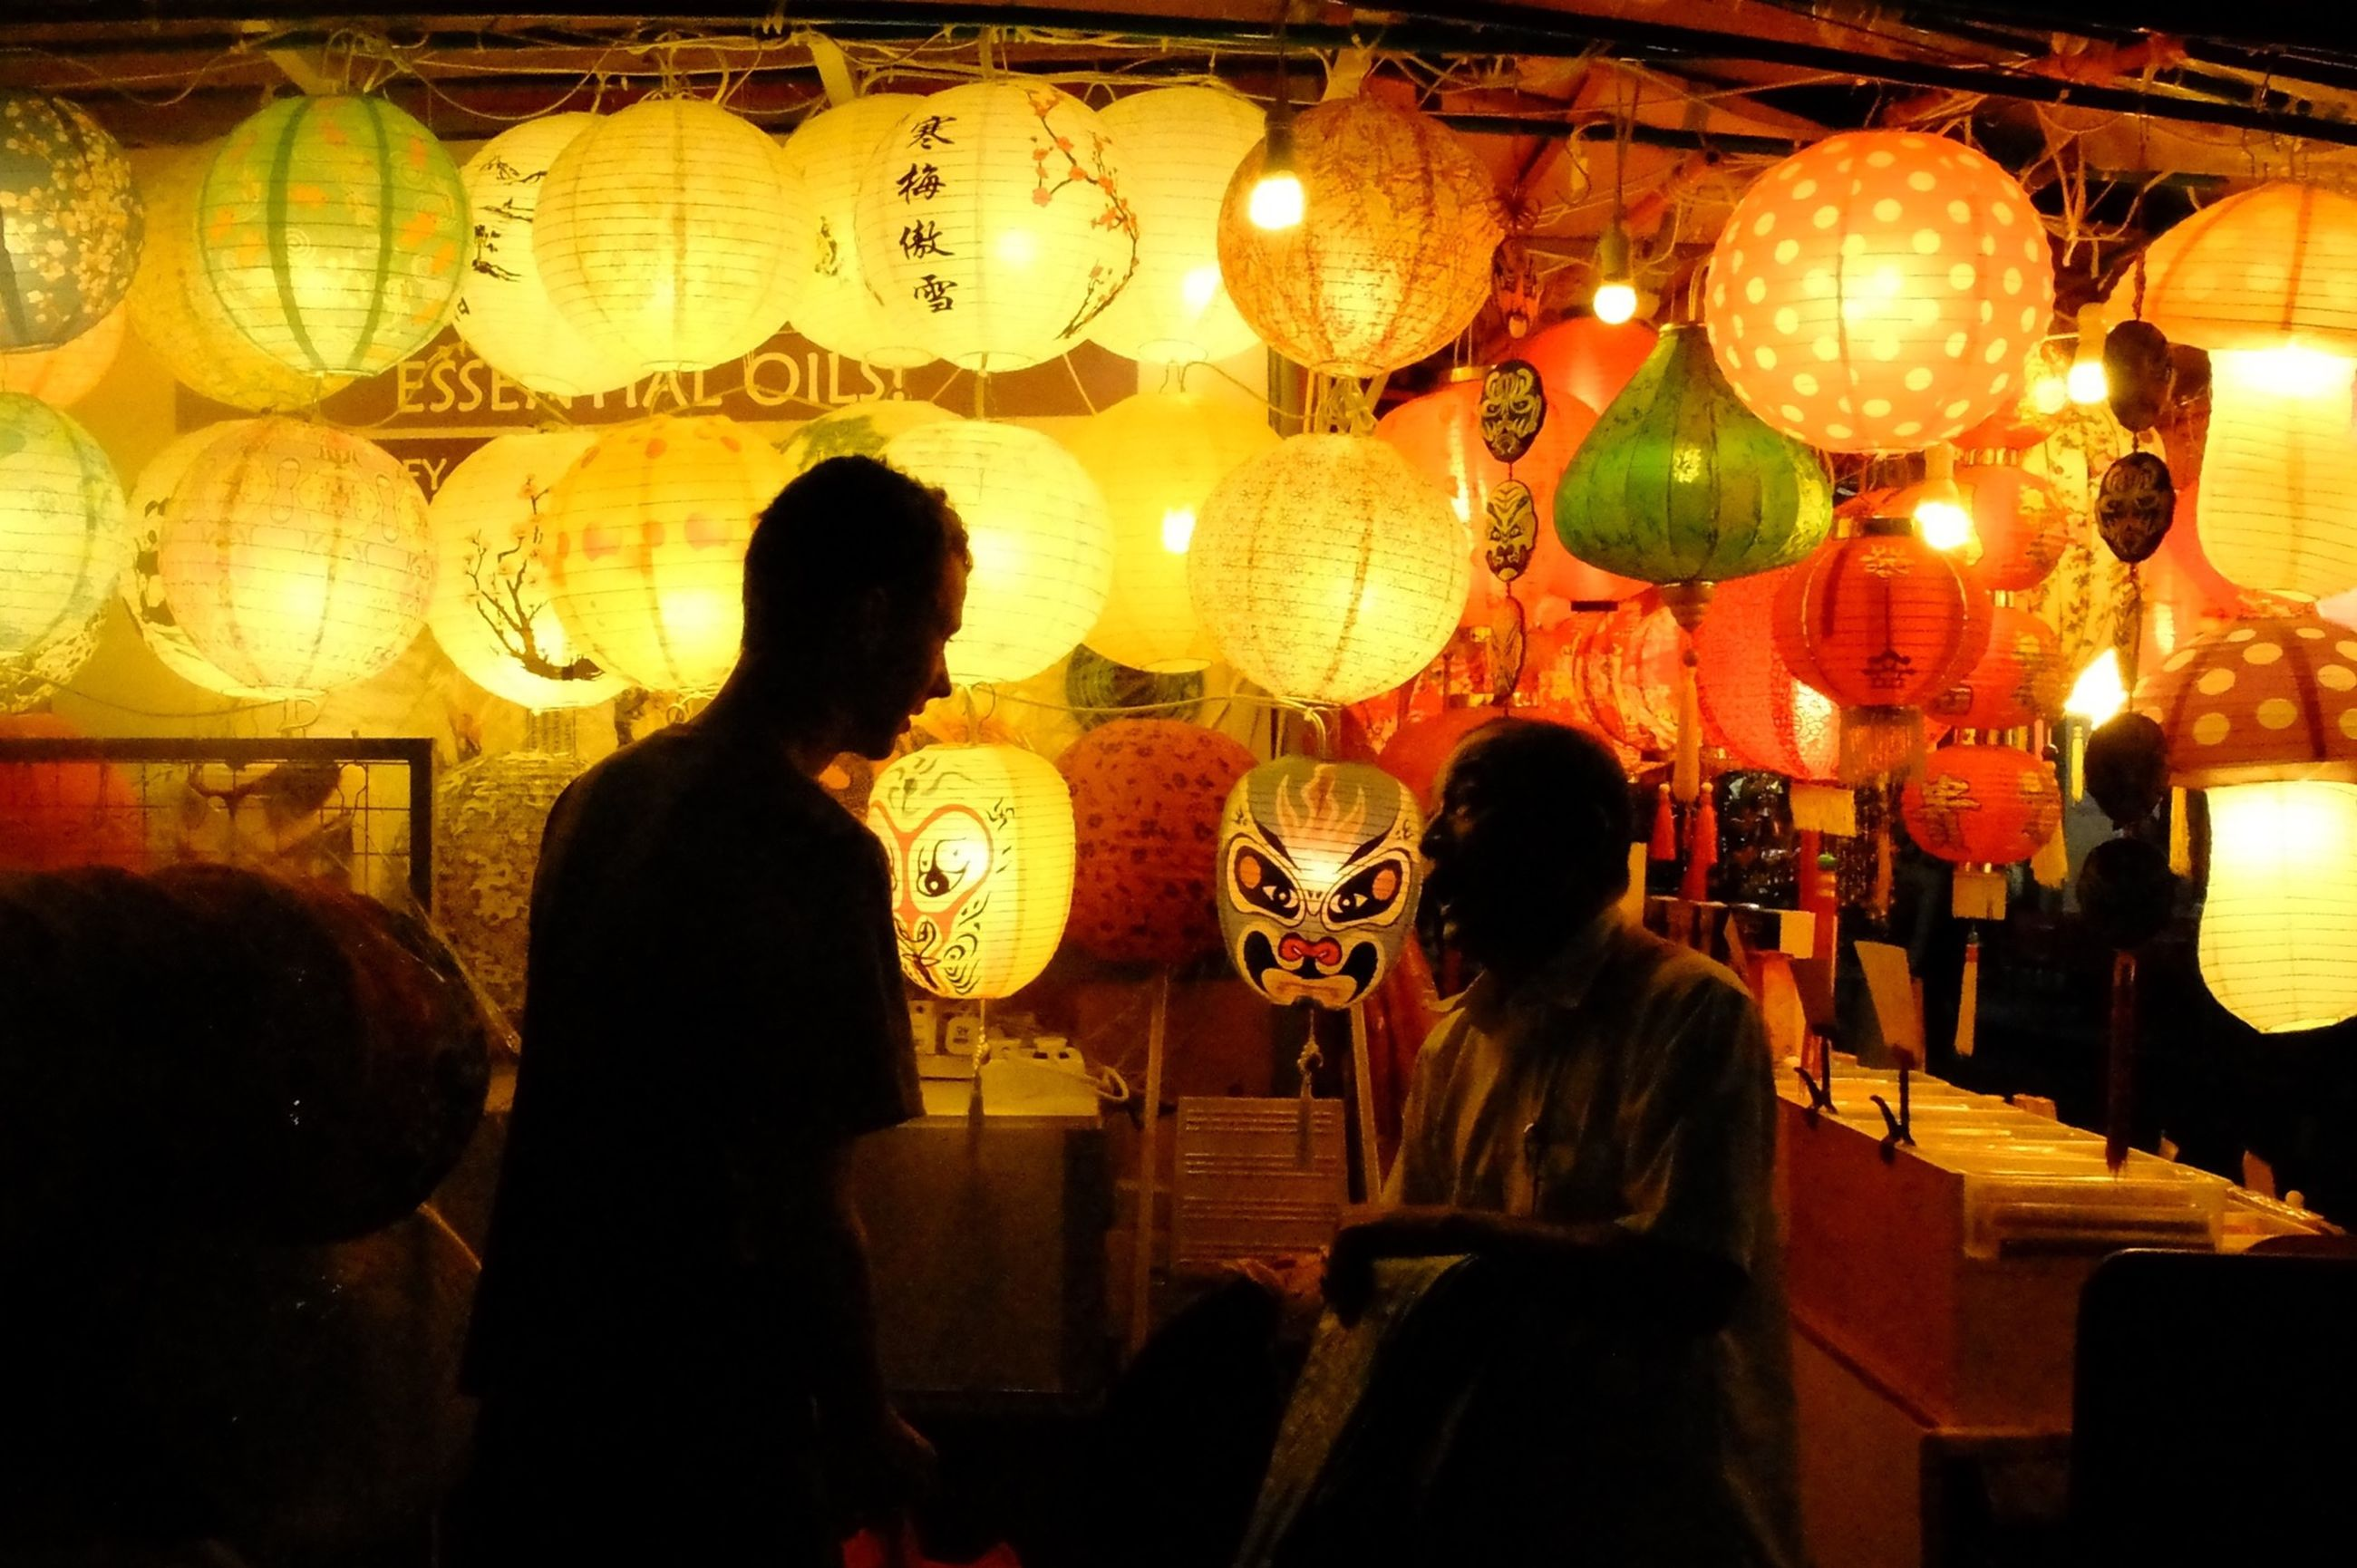 illuminated, indoors, lifestyles, night, men, person, leisure activity, rear view, standing, casual clothing, togetherness, large group of people, lighting equipment, cultures, celebration, lantern, arts culture and entertainment, tradition